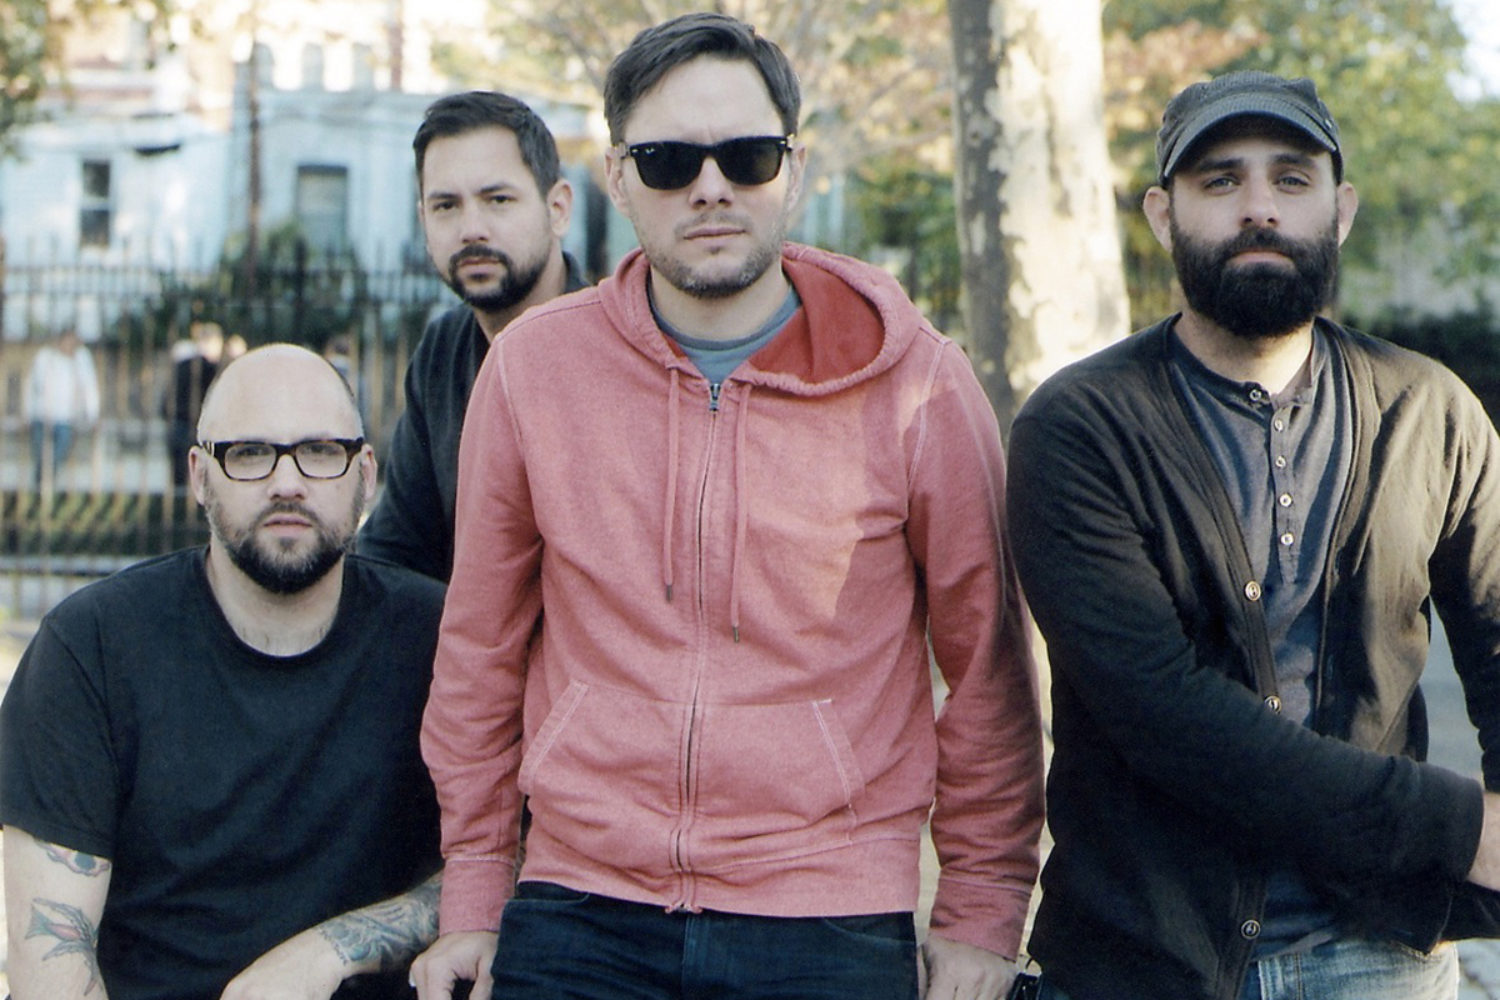 The Jazz June preview new album with 'ain't it strange' featuring Joanna Gruesome's Alanna McArdle